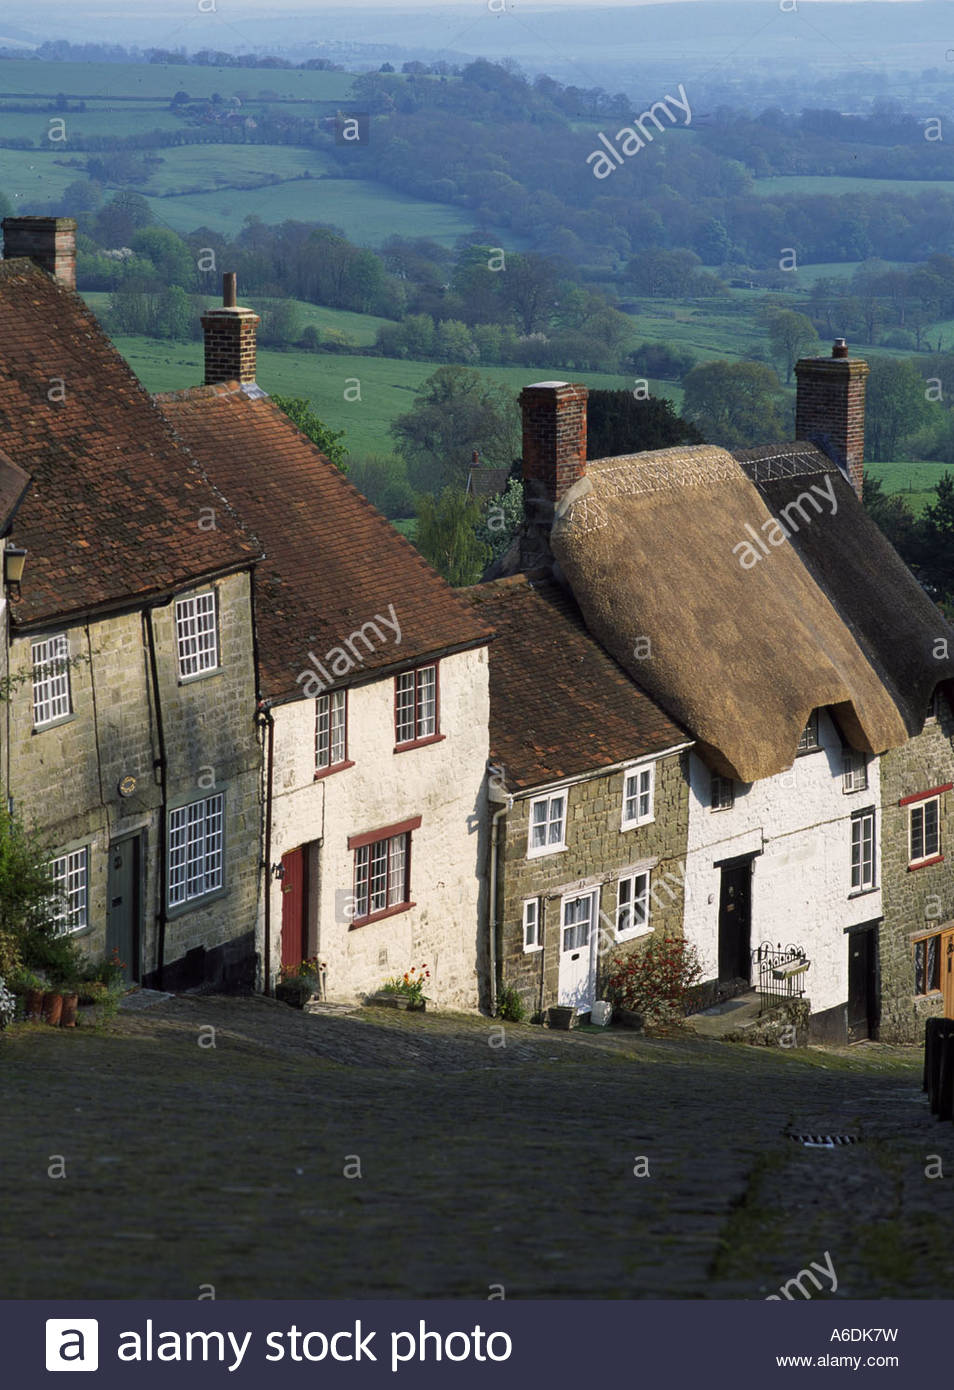 High angle view of buildings, Dorset, England - Stock Image